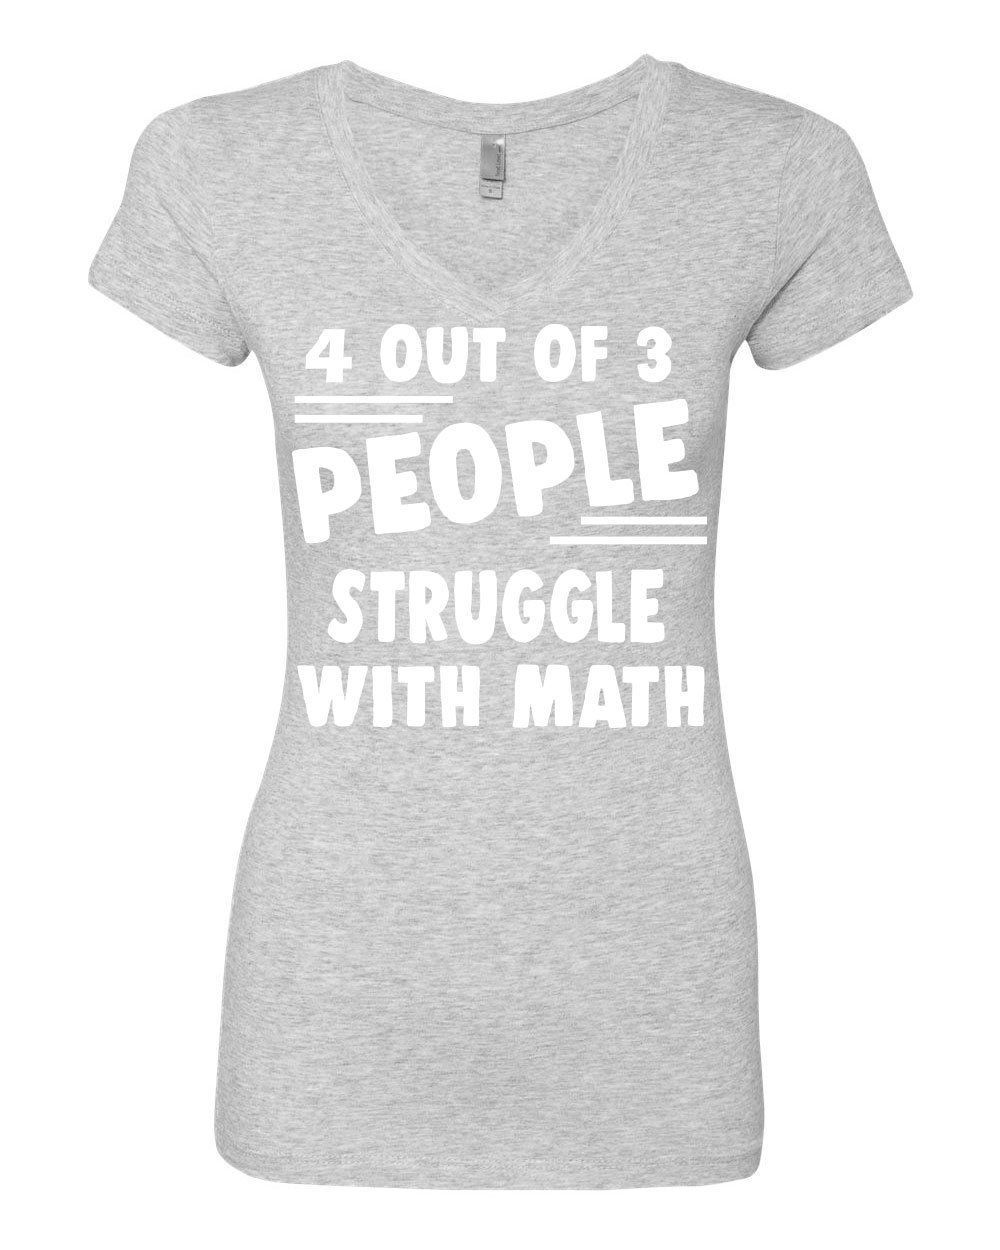 4 Out Of 3 People Struggle With Math Women/'s V-Neck T-Shirt Funny College Humor